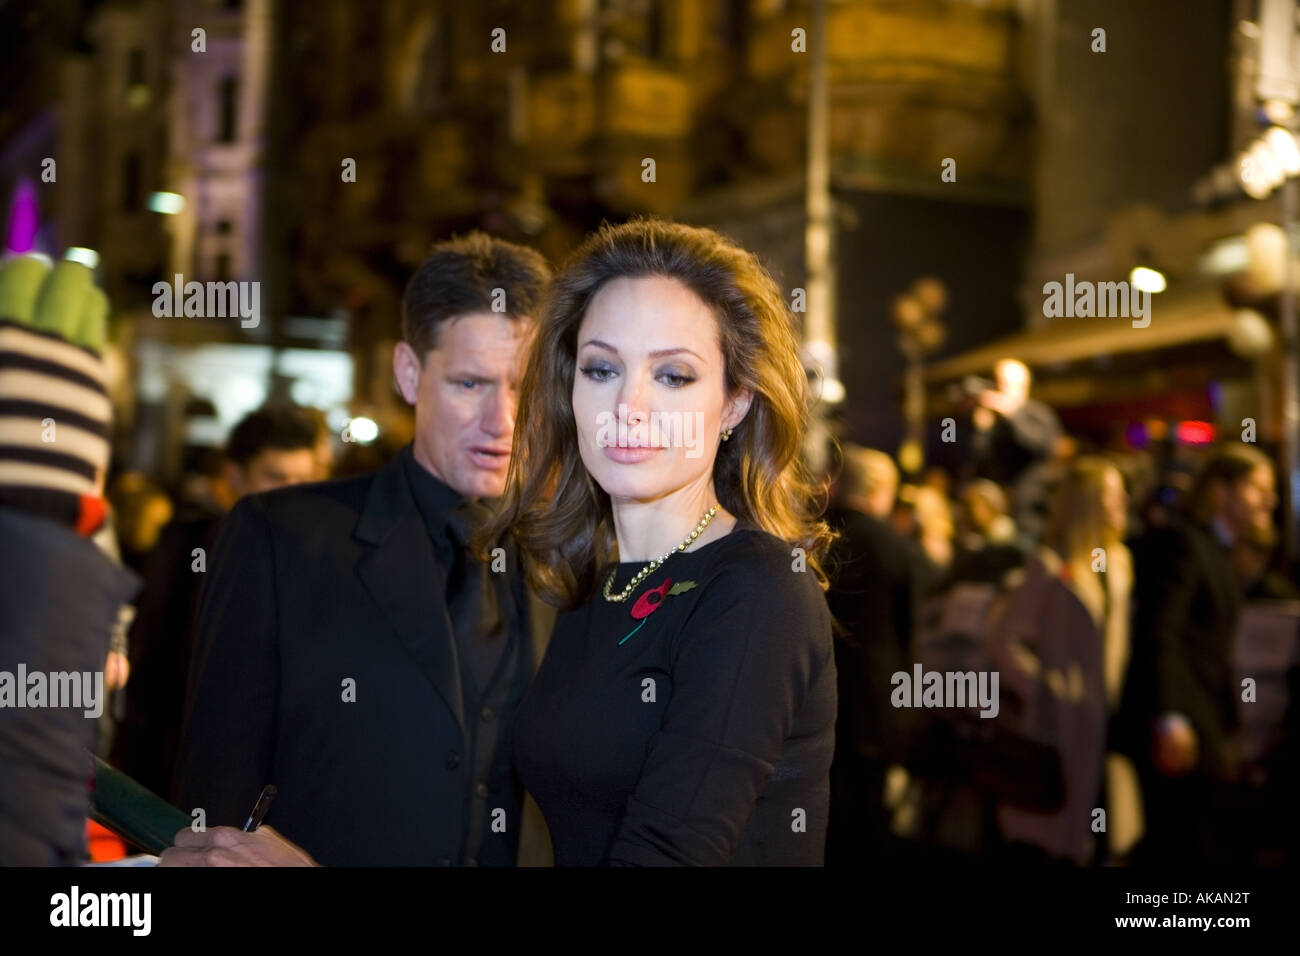 angelina jolie at beo wulf film premiere european leicester square london - Stock Image